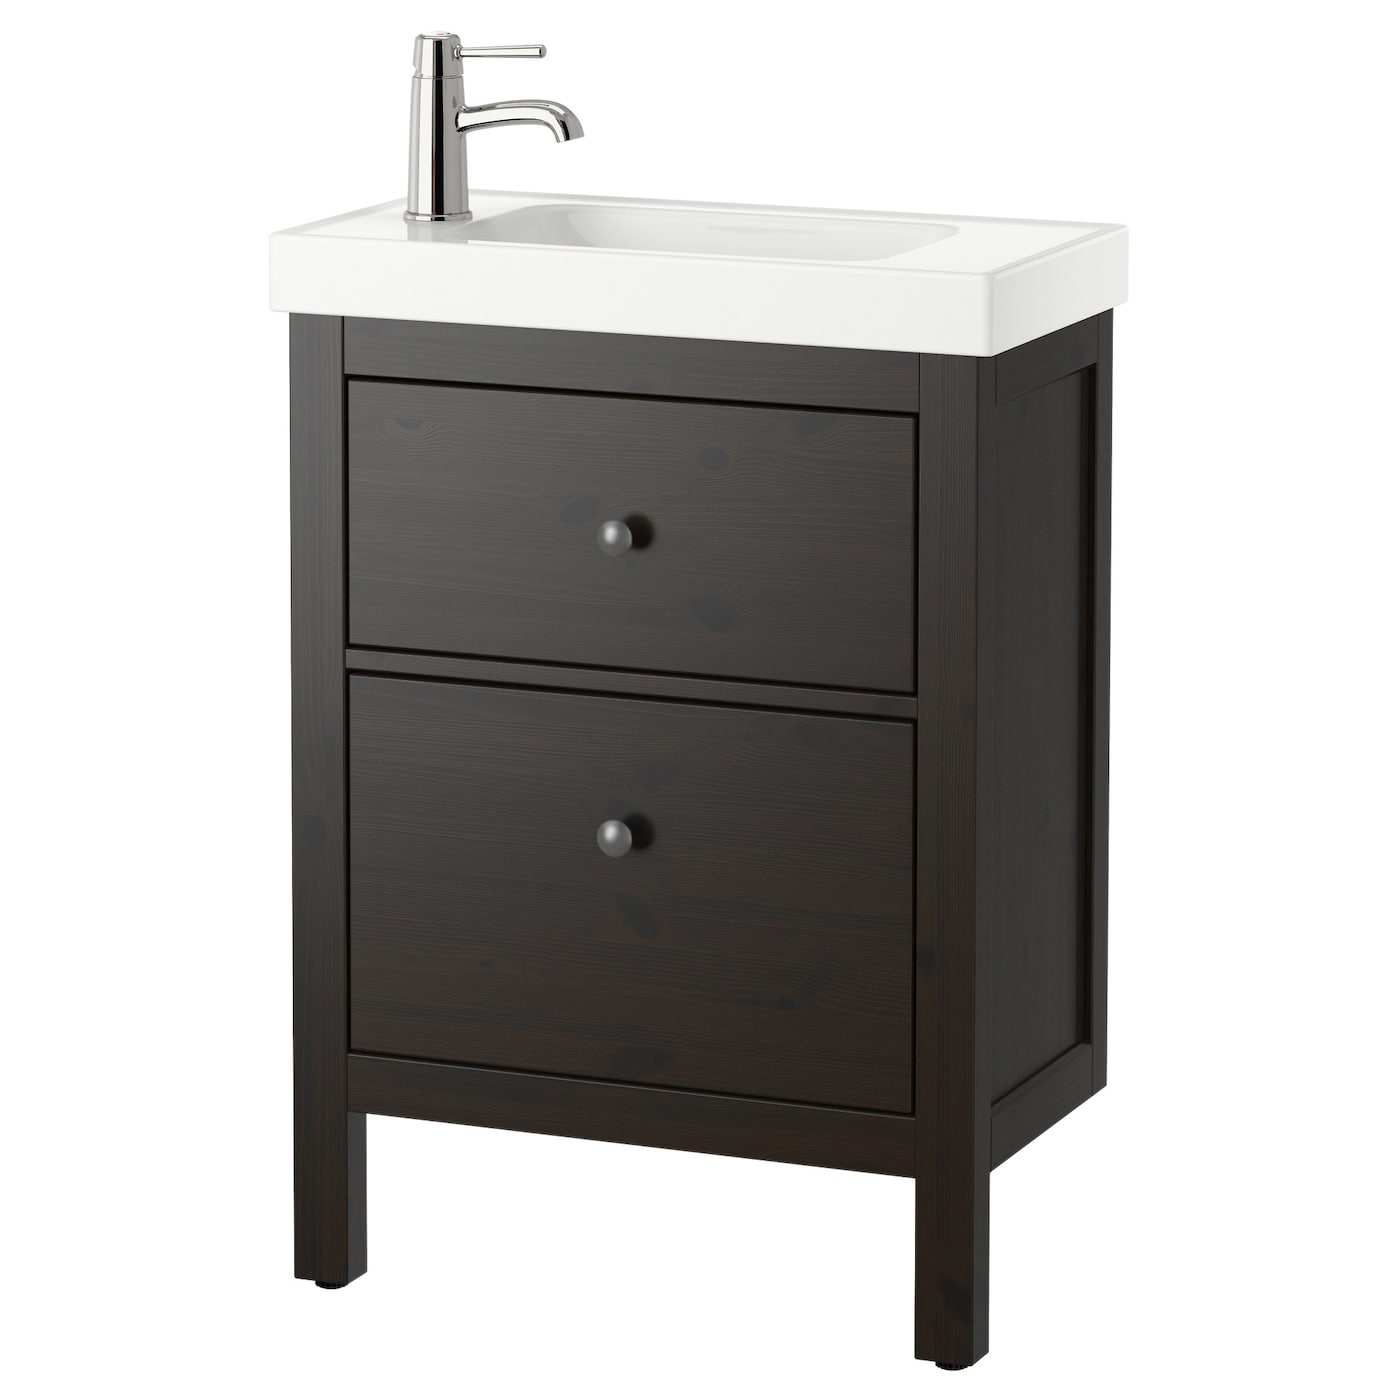 hemnes hagaviken wash stand with 2 drawers black brown 60x34x90 cm ikea. Black Bedroom Furniture Sets. Home Design Ideas